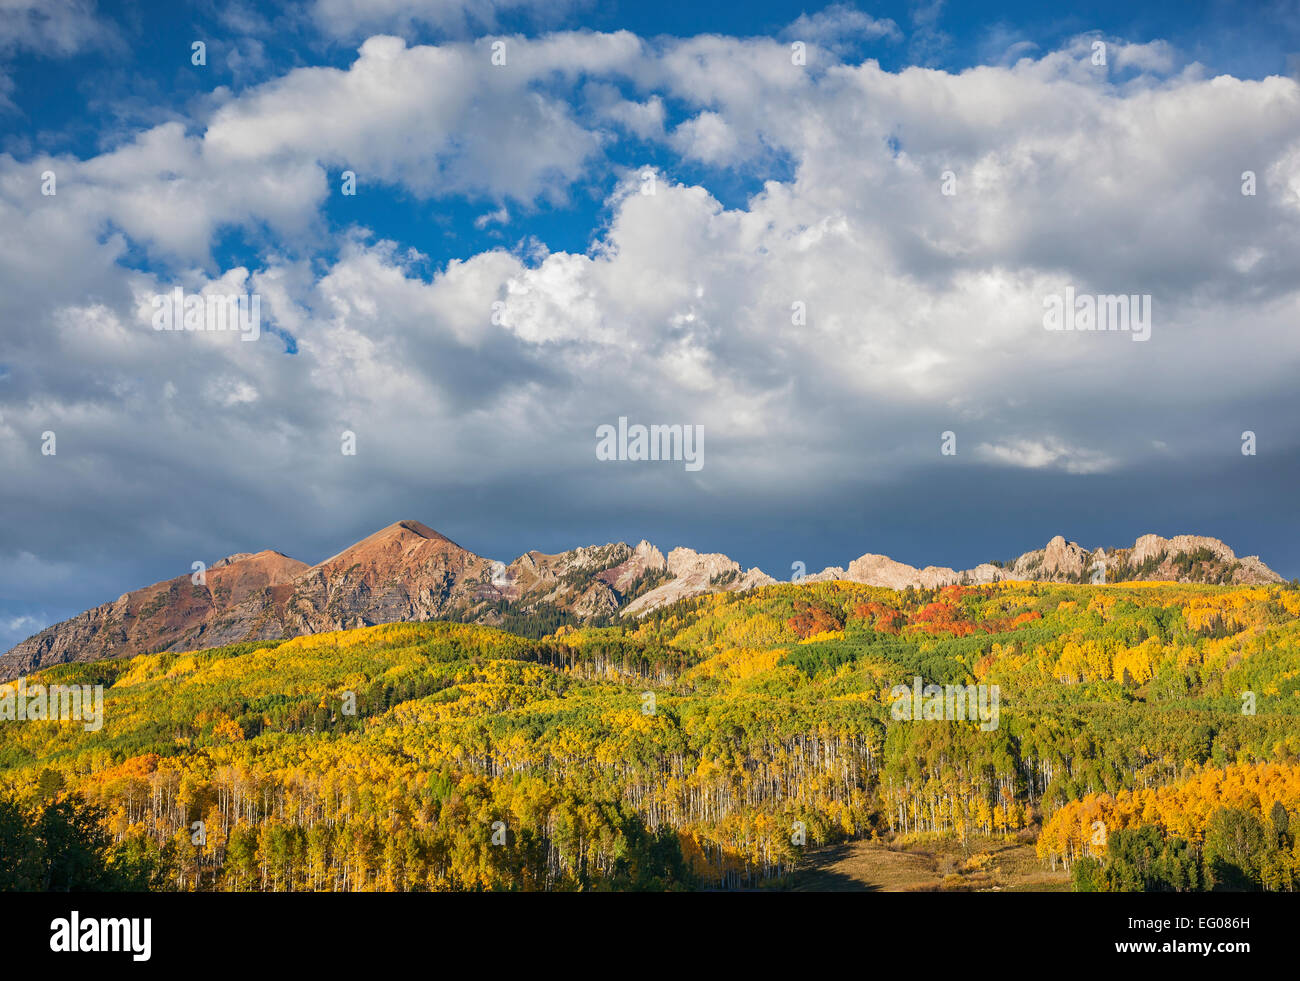 Gunnison National Forest, CO: Clouds over the Ruby Range in early fall - Stock Image